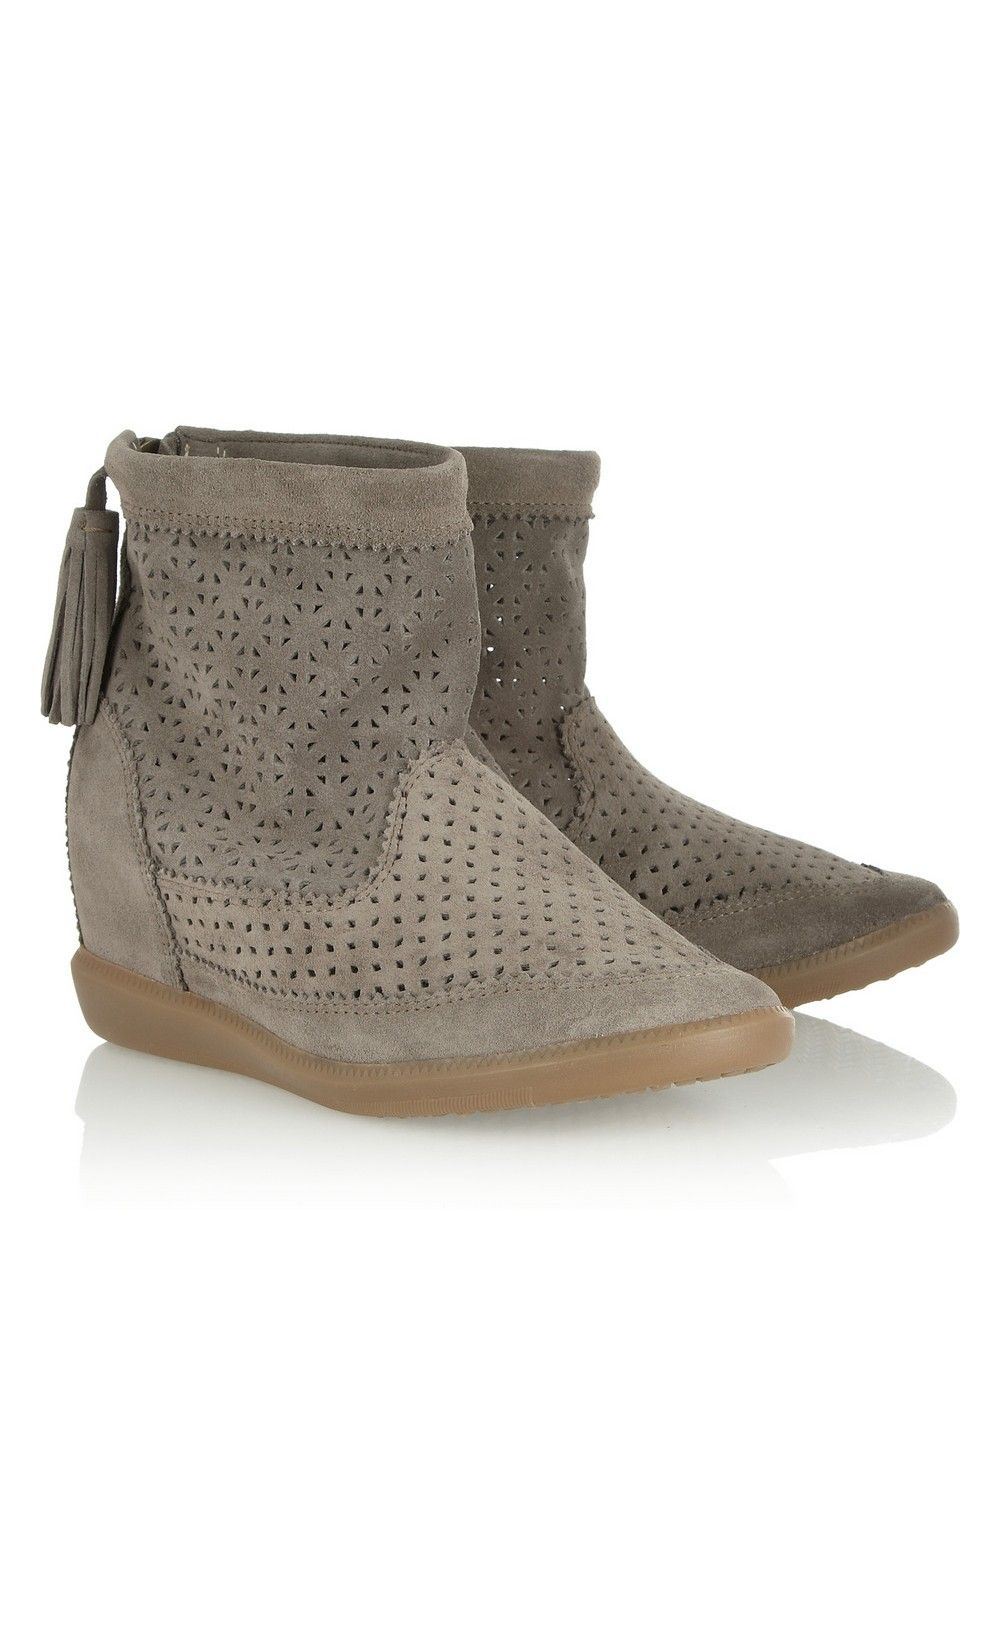 Isabel Marant Beslay Wedge Ankle Boots clearance 2015 iZTfQ